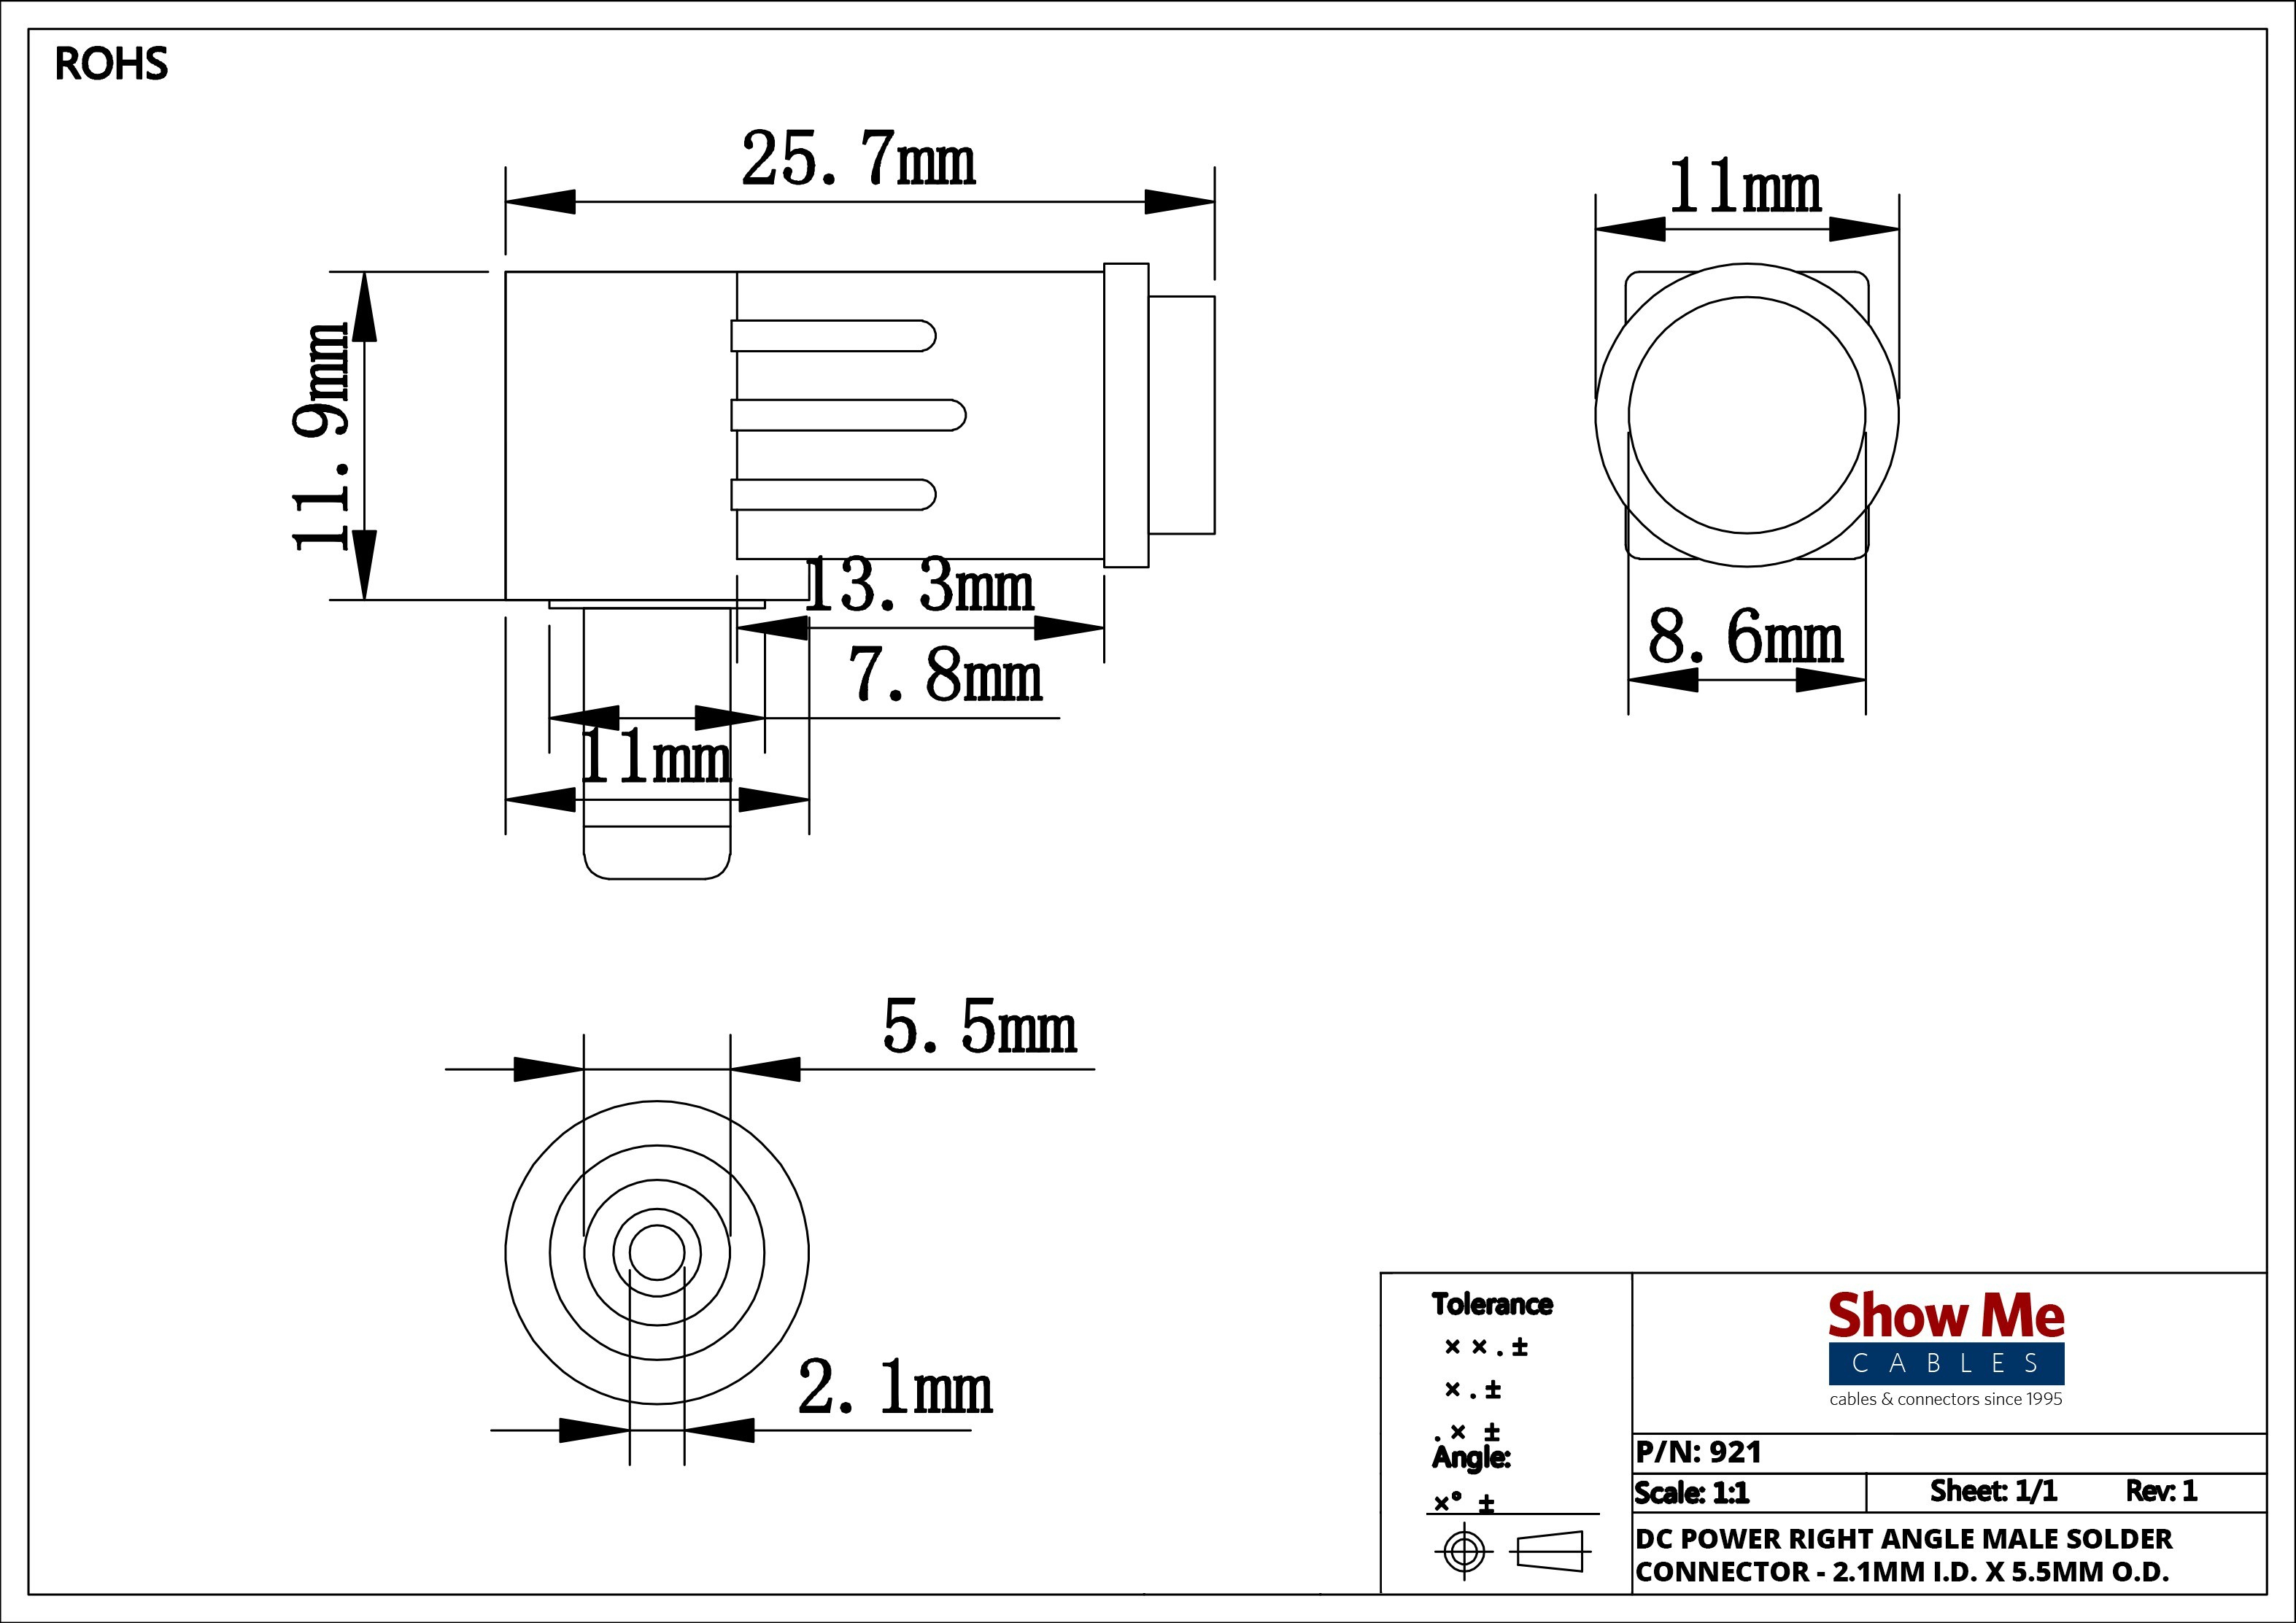 fan control center wiring diagram Download-black magic fan wiring diagram Download 3 5 Mm Jack Wiring Diagram Fresh 2 5mm 9-t